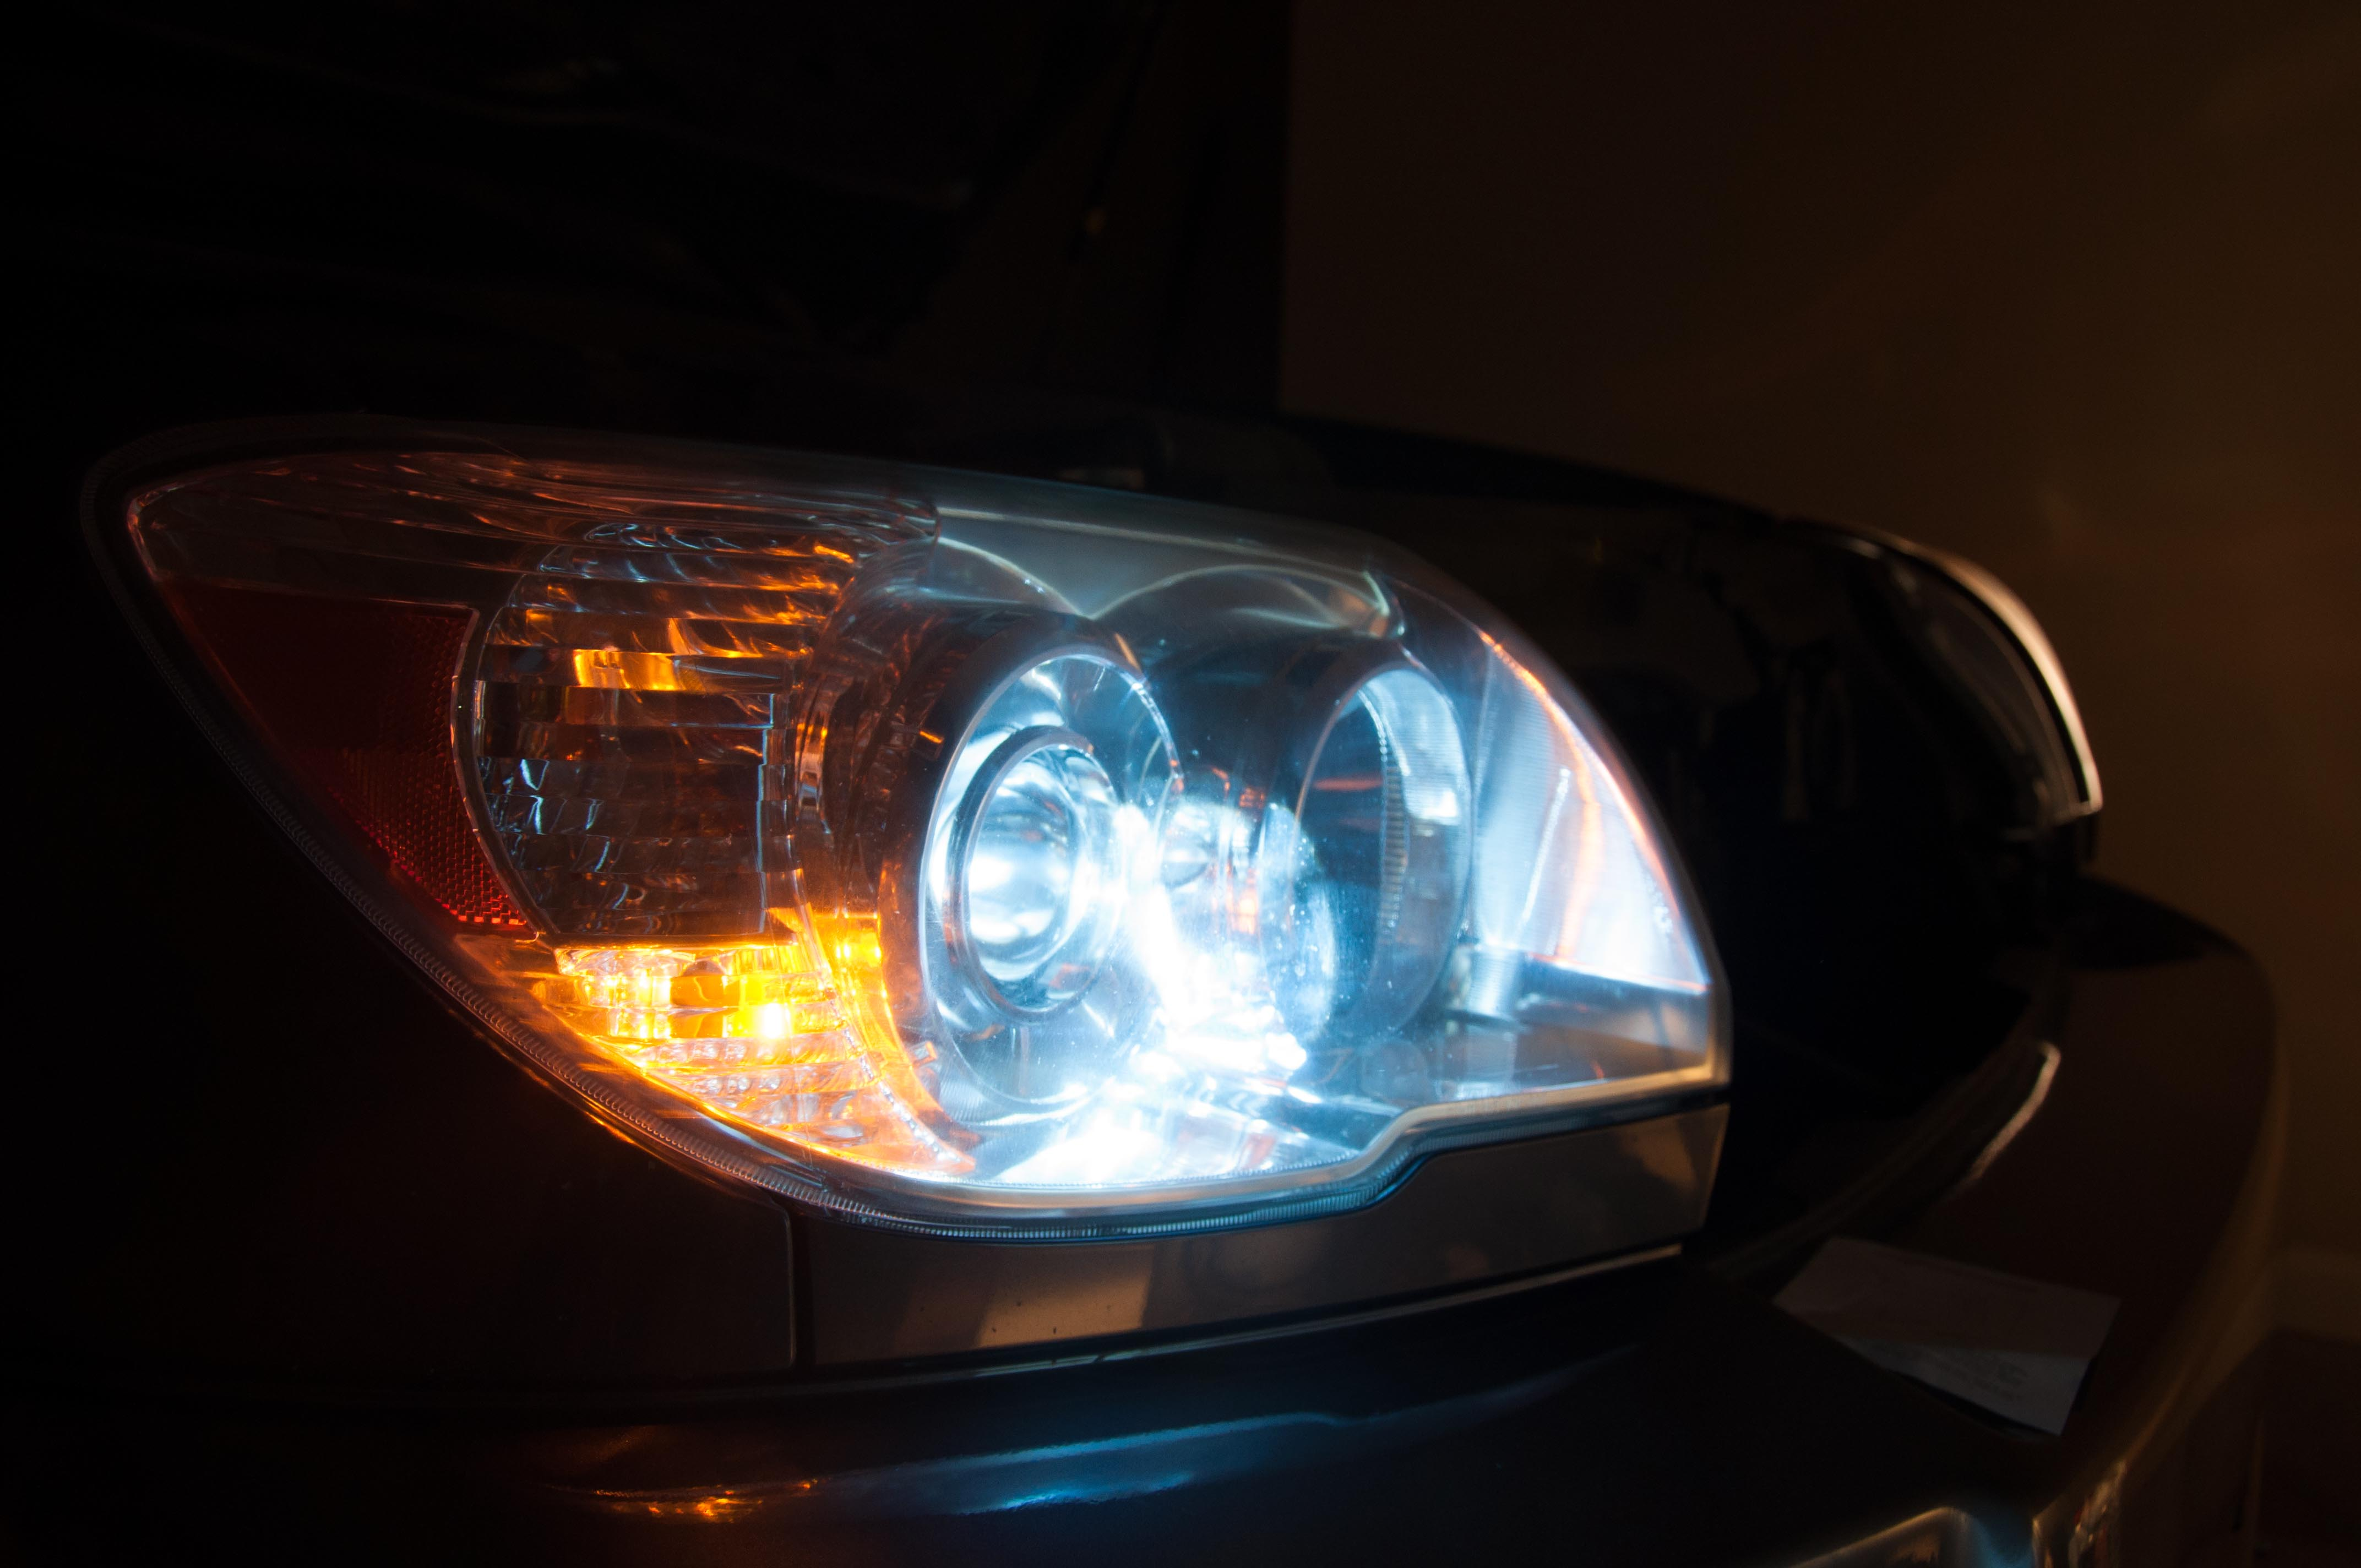 Xentec HID Headlights 68 of 84?fit=4288%2C2848 xentec hid kit review headlight reviews xentec wiring diagram at webbmarketing.co